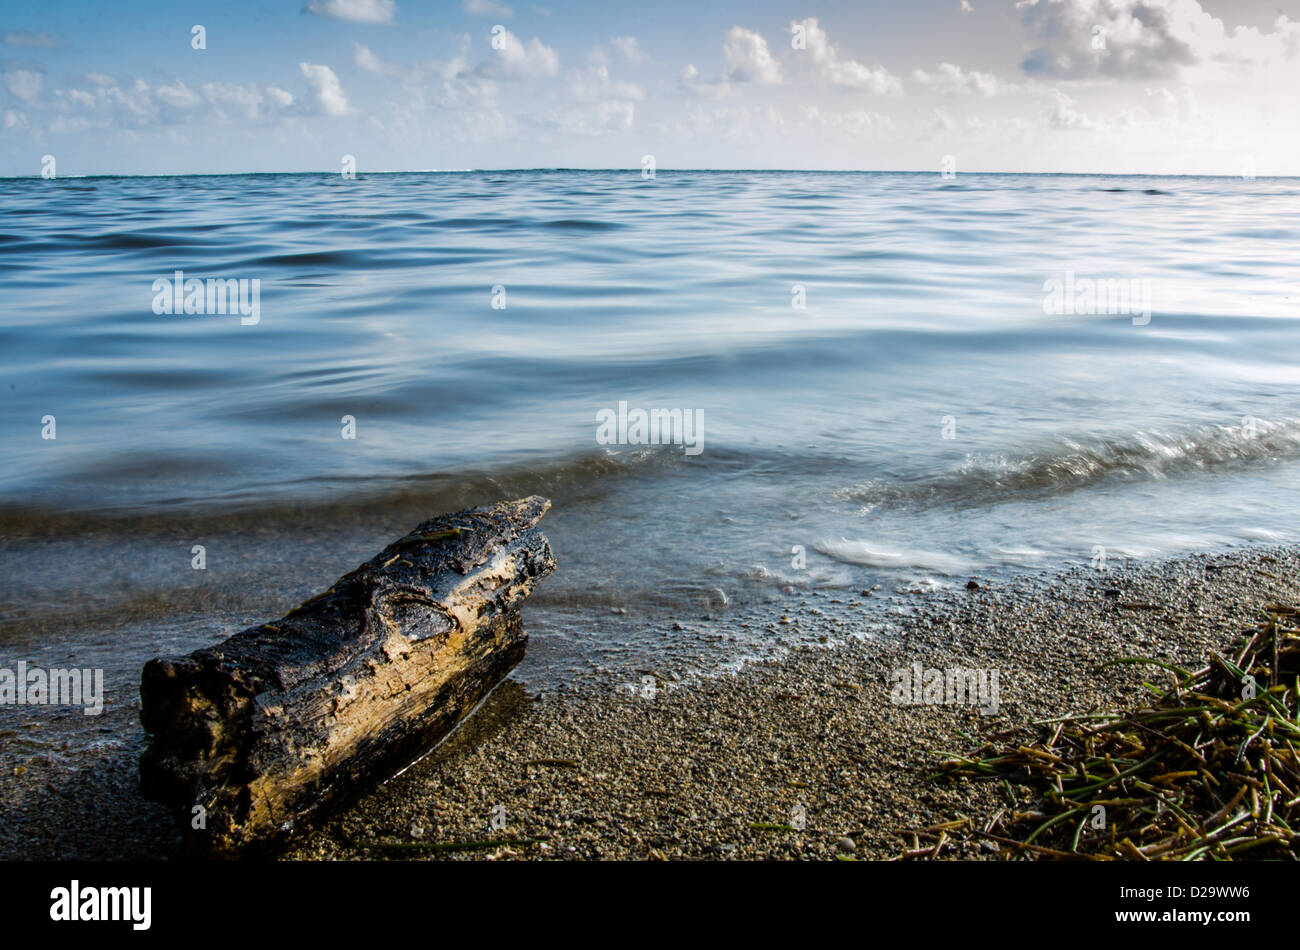 Log on Bel Ombre beach - Stock Image